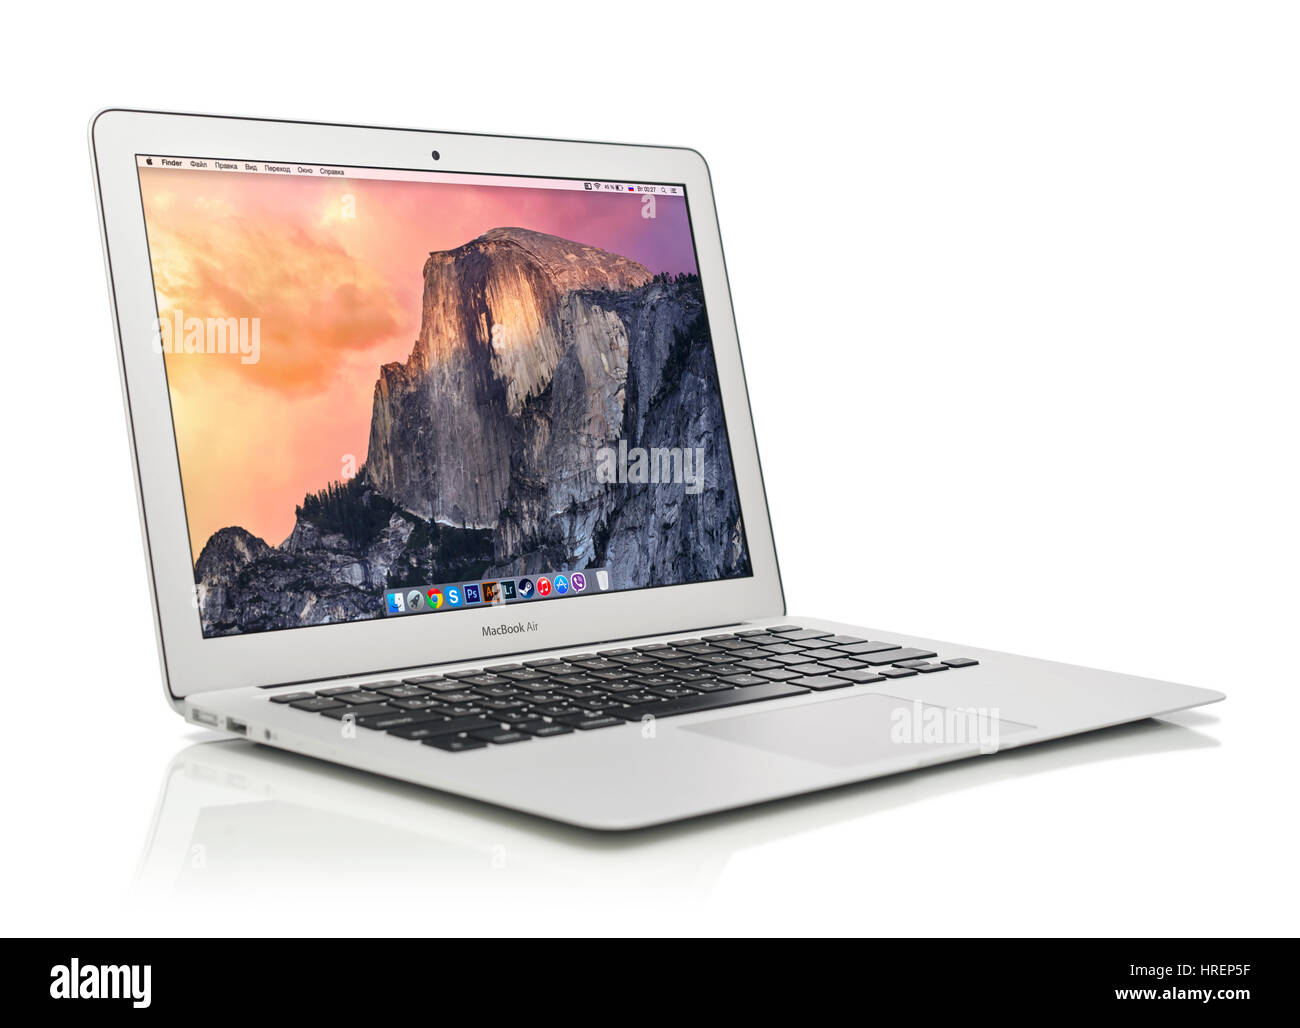 KIEV, UKRAINE - JANUARY 29, 2015: Studio shot of brand new Apple MacBook Air Early 2014 with home page on screen, - Stock Image